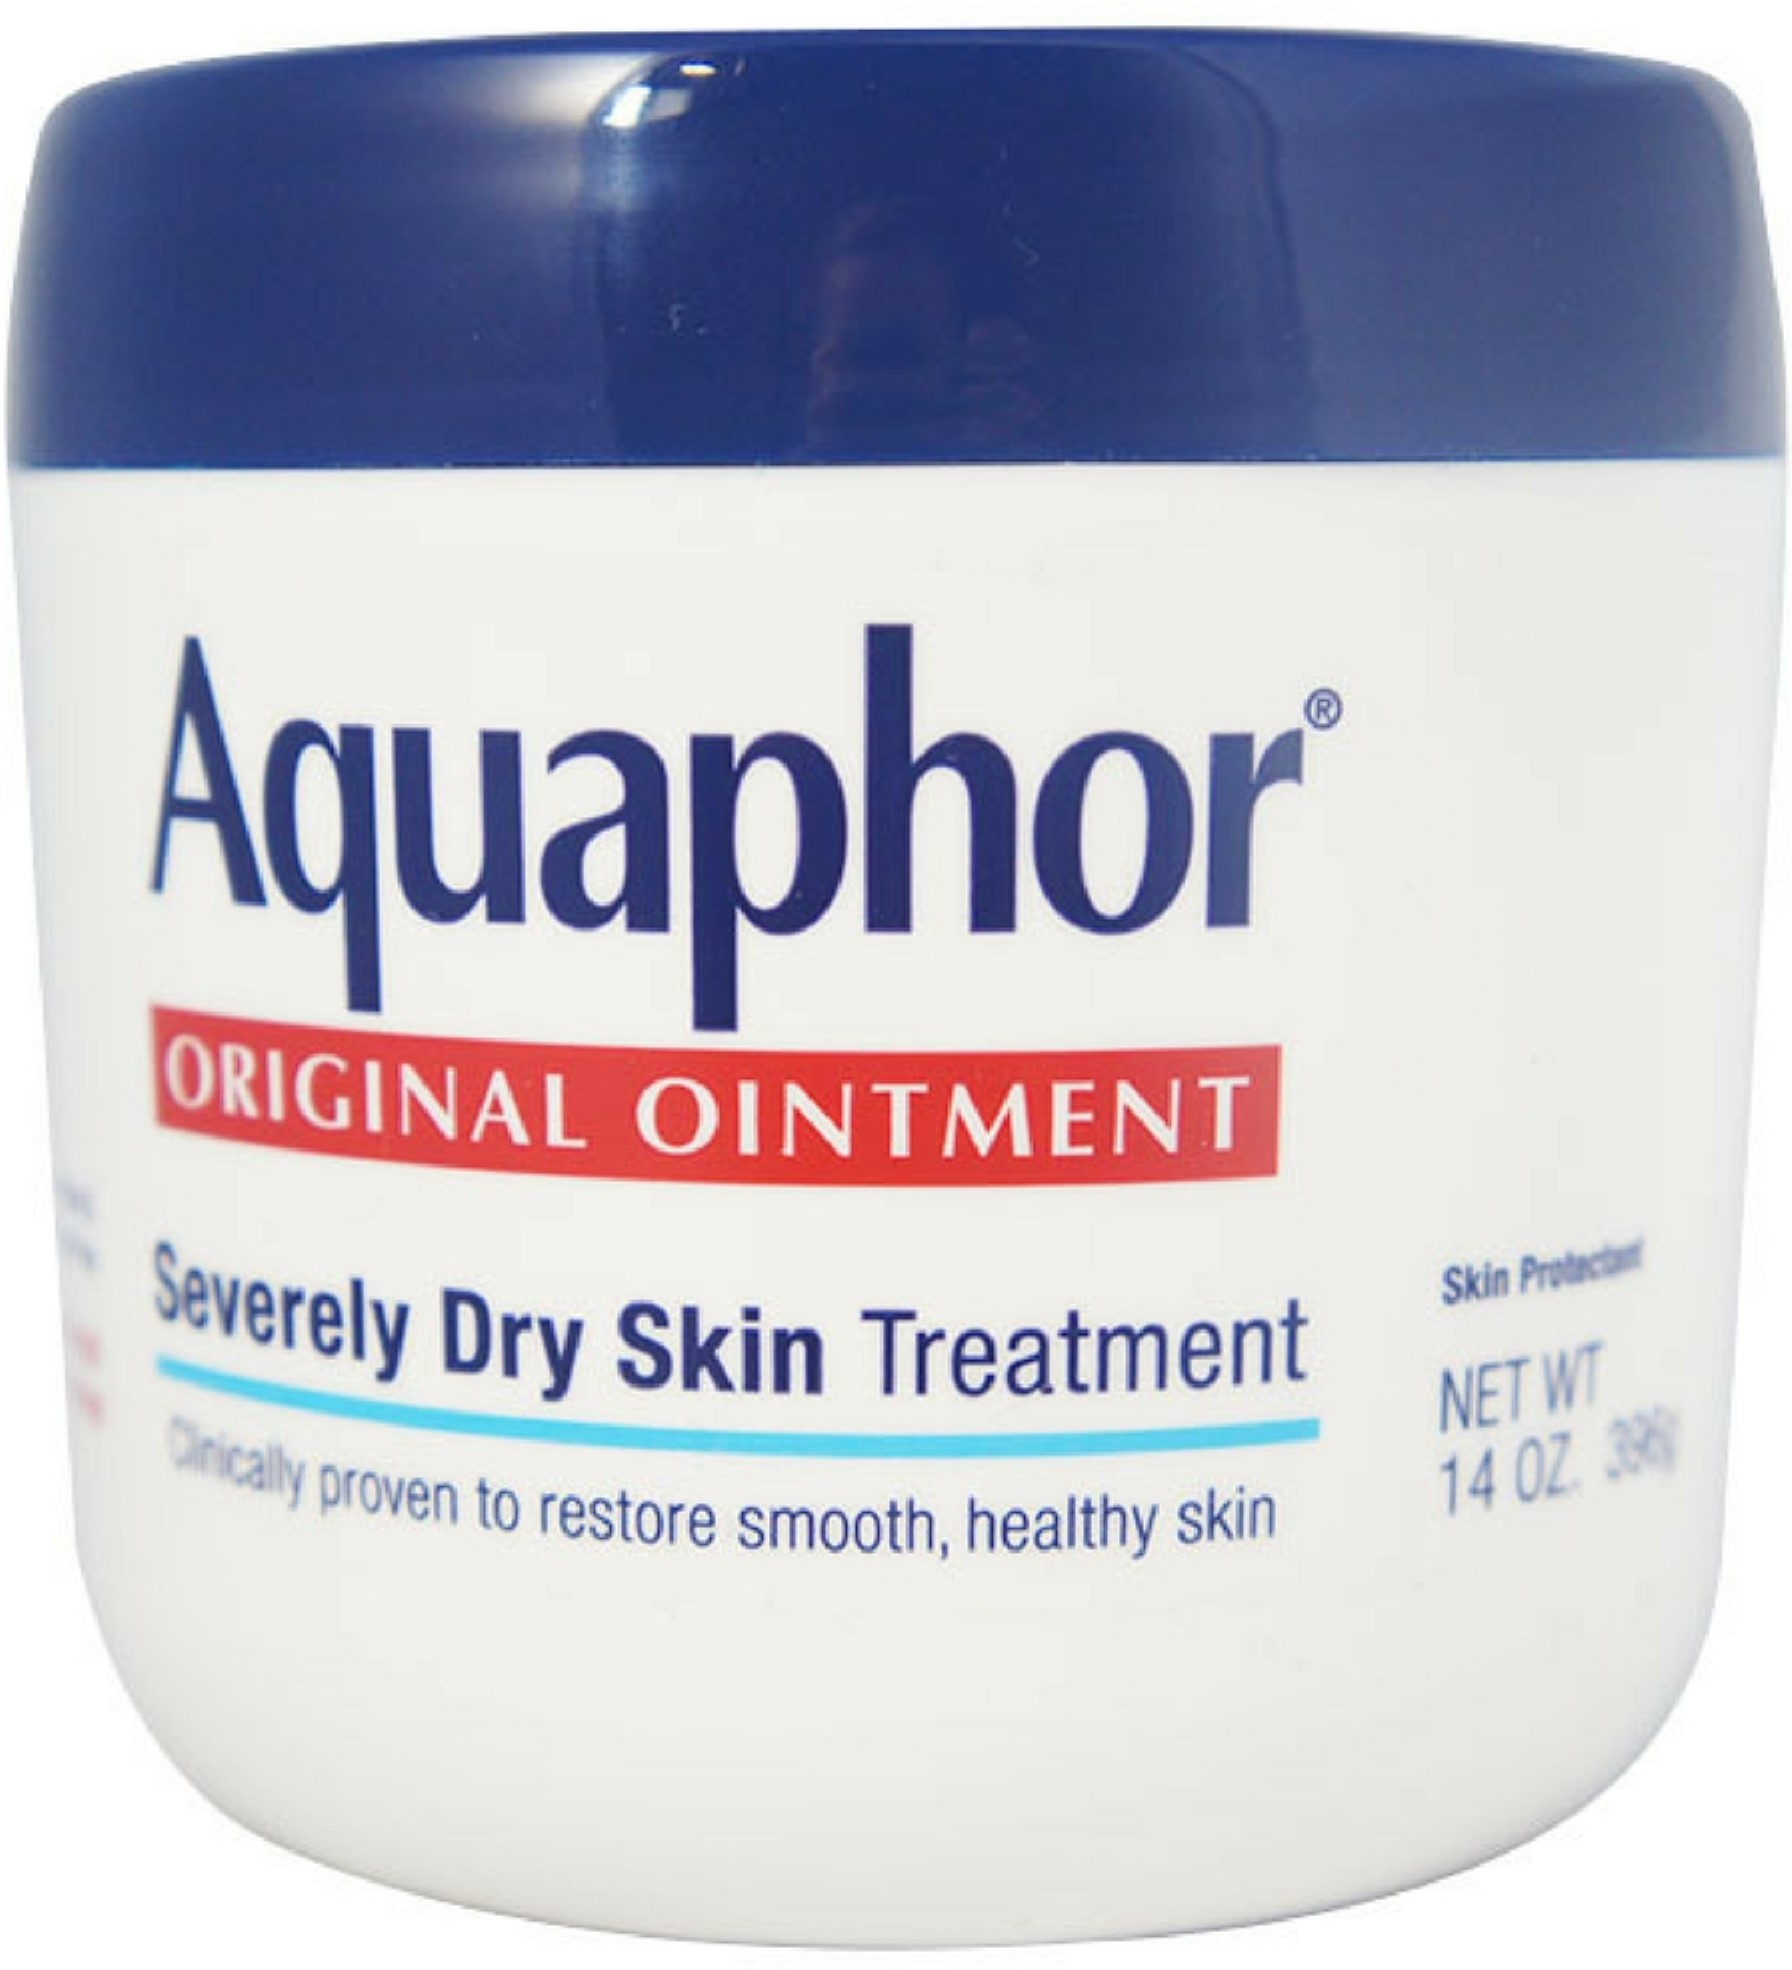 4 Pack - Aquaphor Original Ointment 14 oz